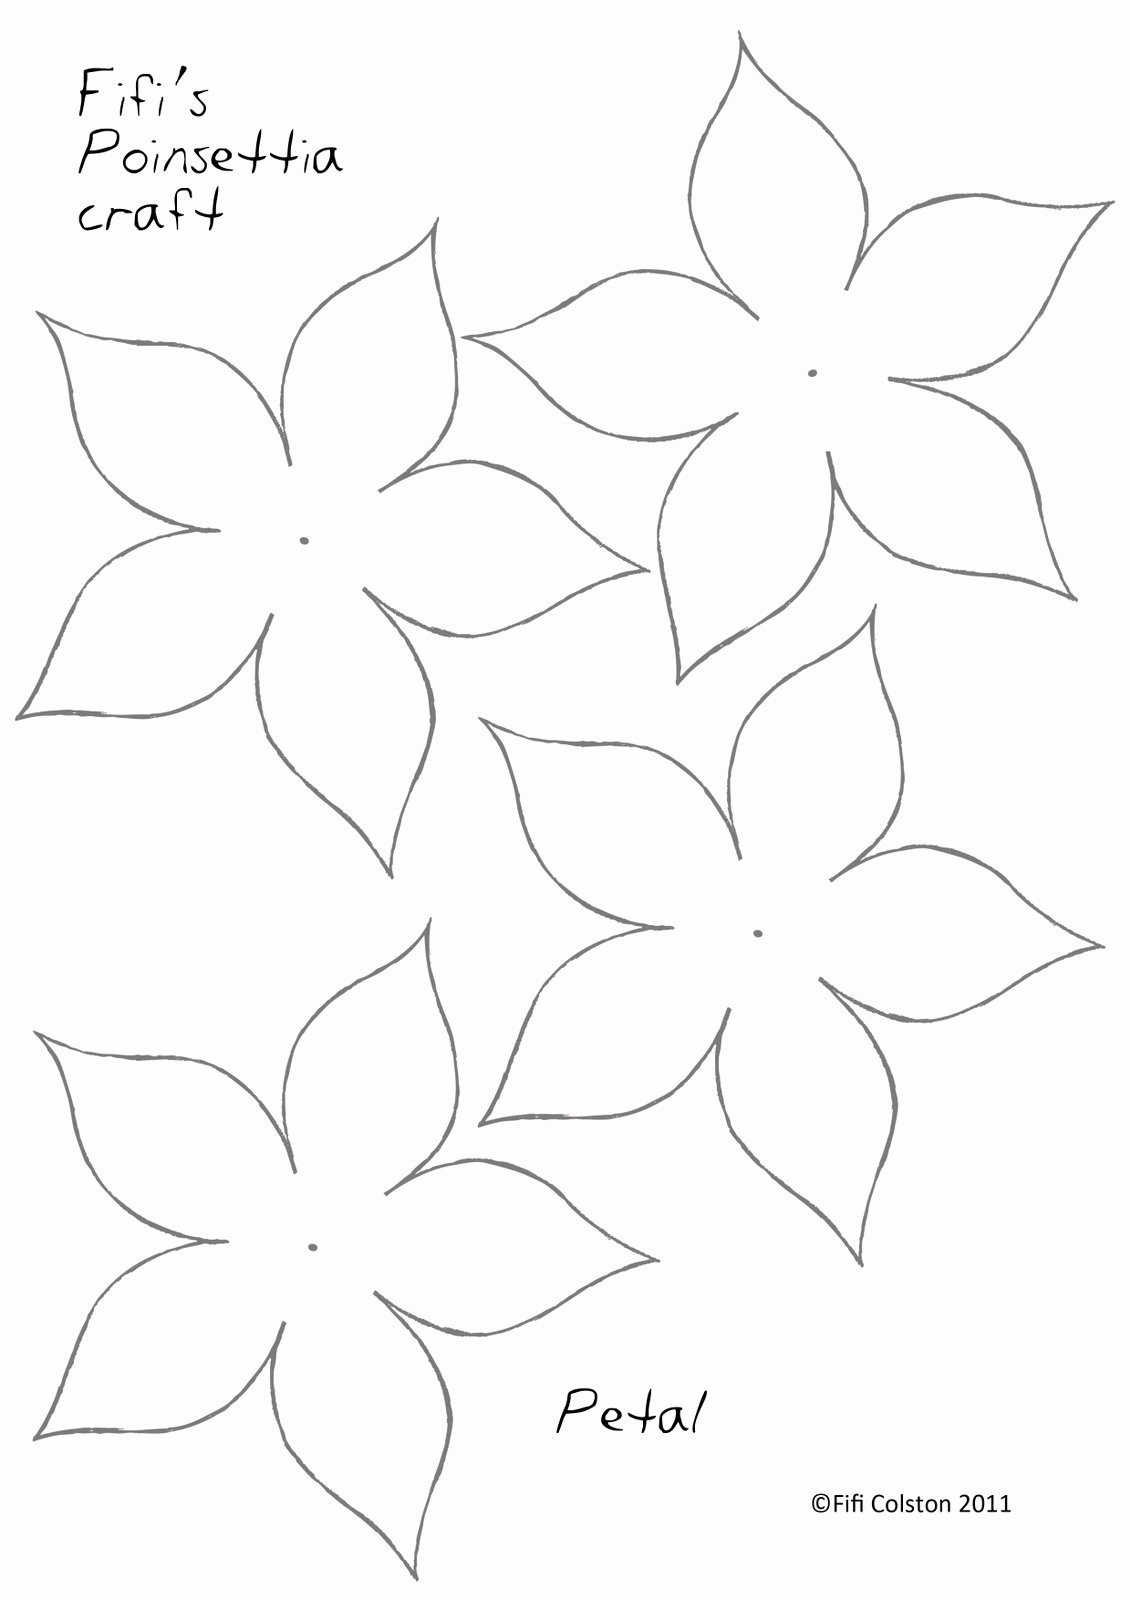 Paper Flower Petals Template Inspirational Fifi Colston Creative Pretty Paper Poinsettias